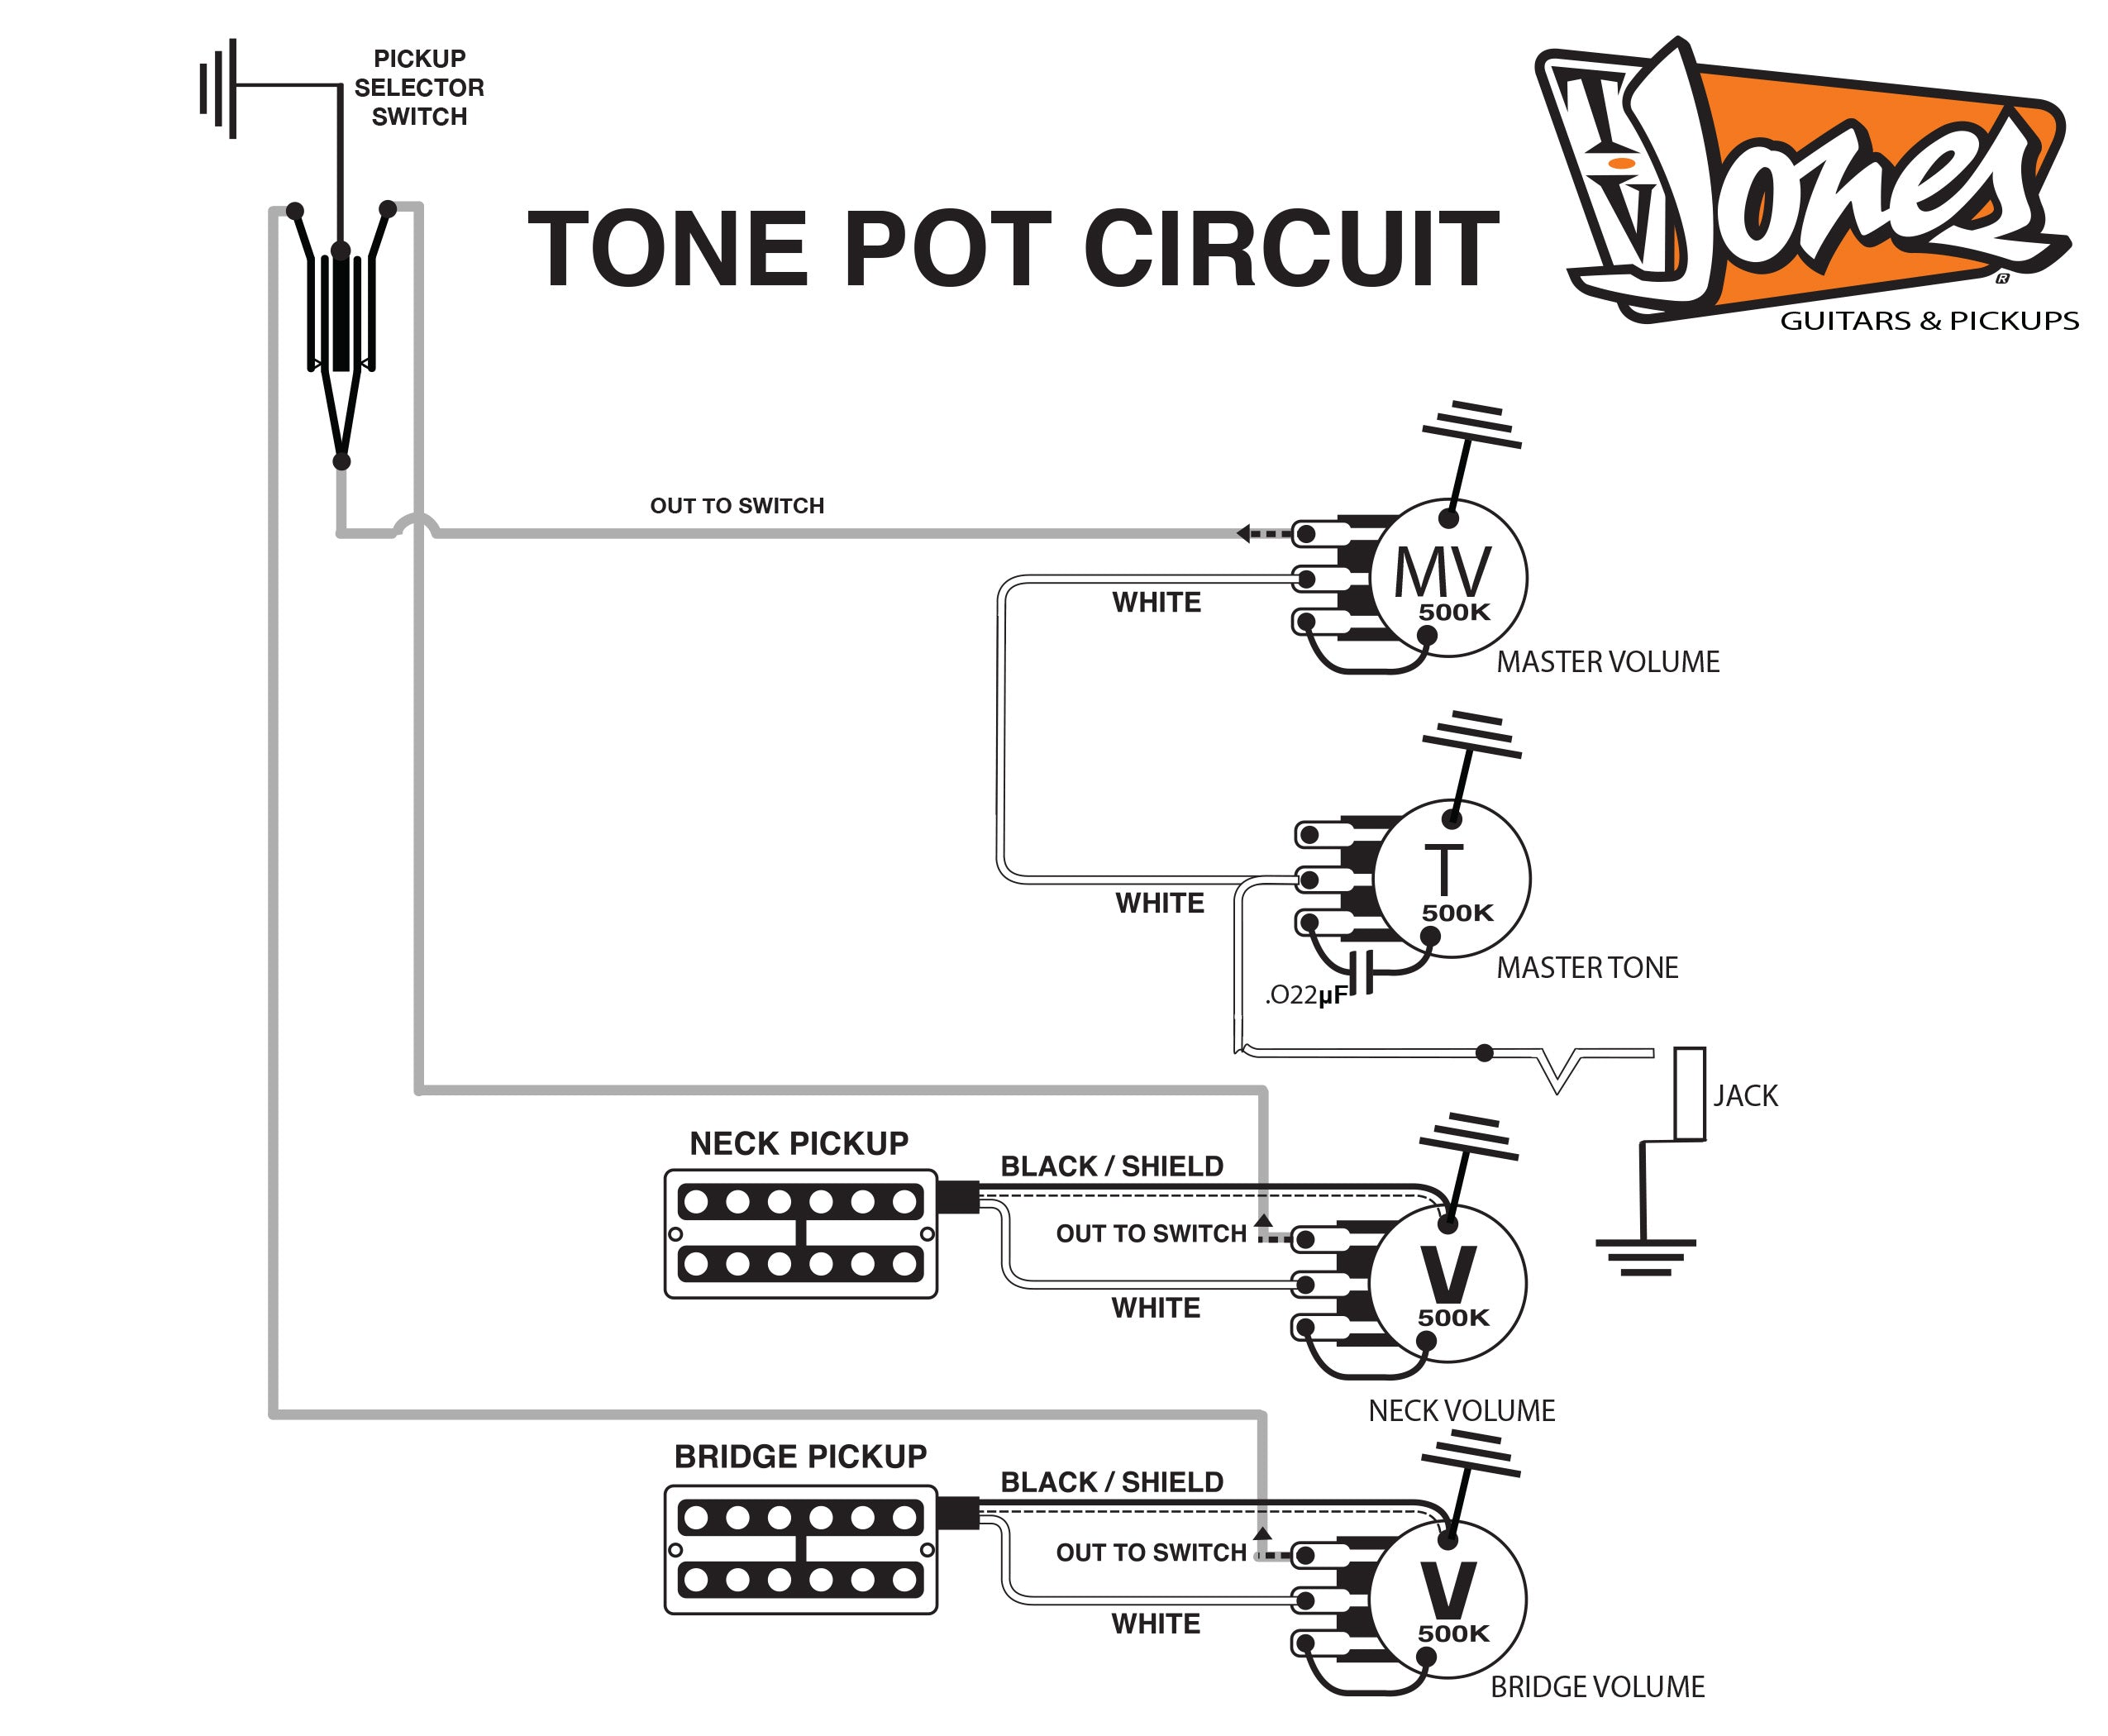 Tv Jones Product Dimensions Fender Telecaster Wiring Diagram 3 Way Gretsch Guitar Schematics